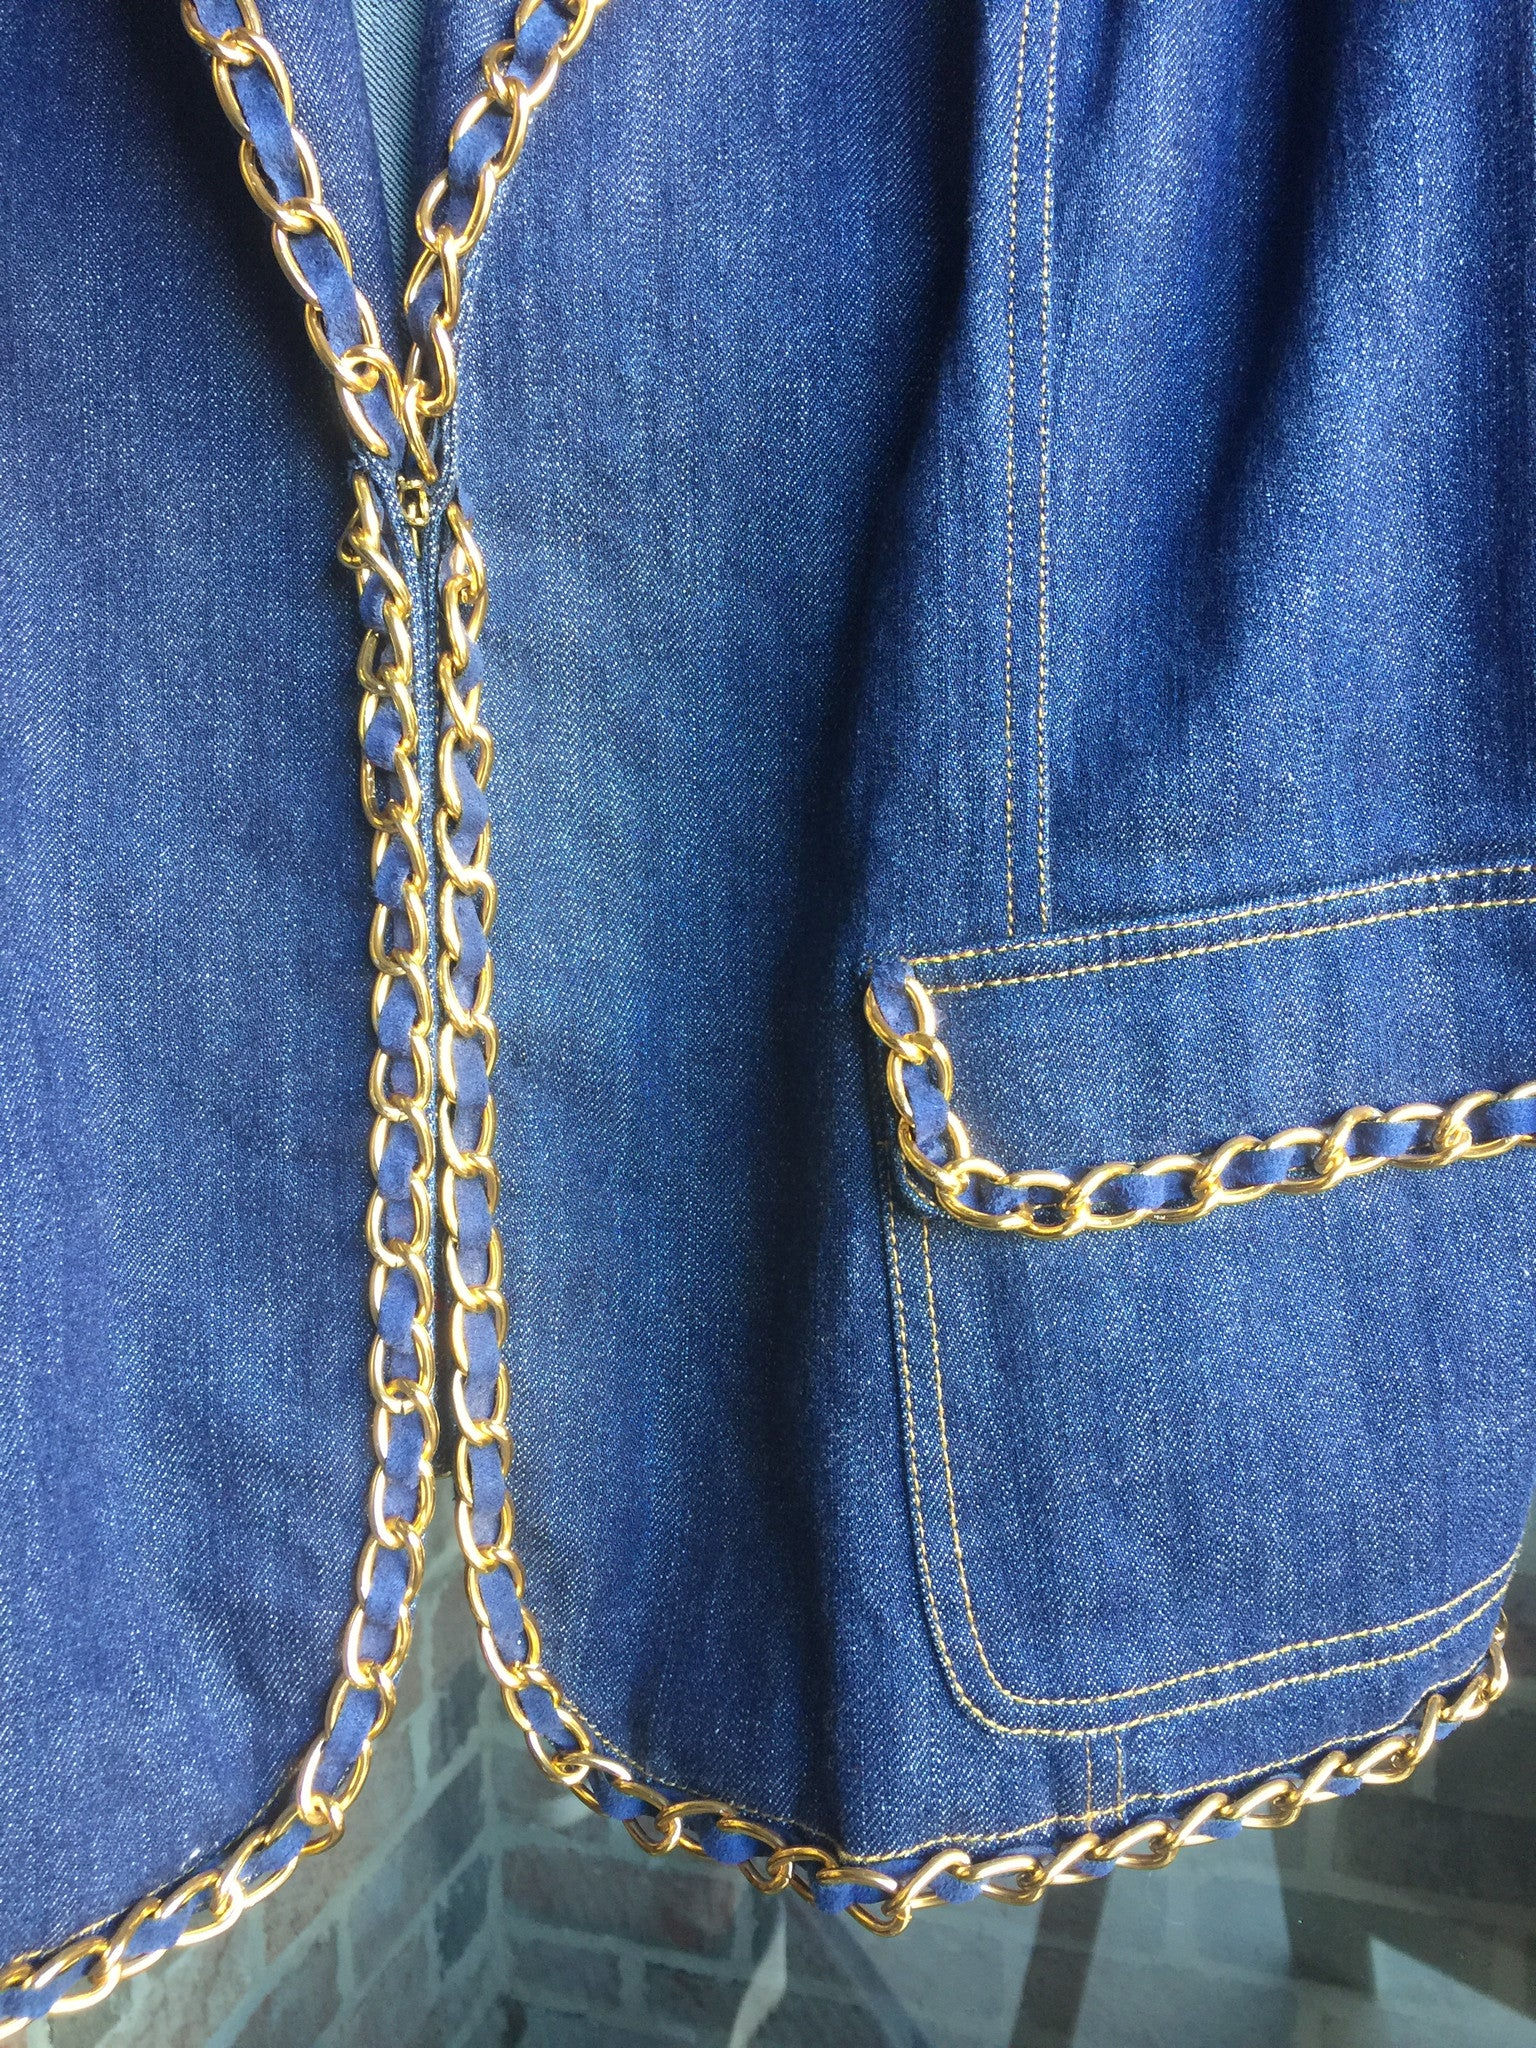 Randolph Duke Gold Chained Denim Blazer: Sz 20